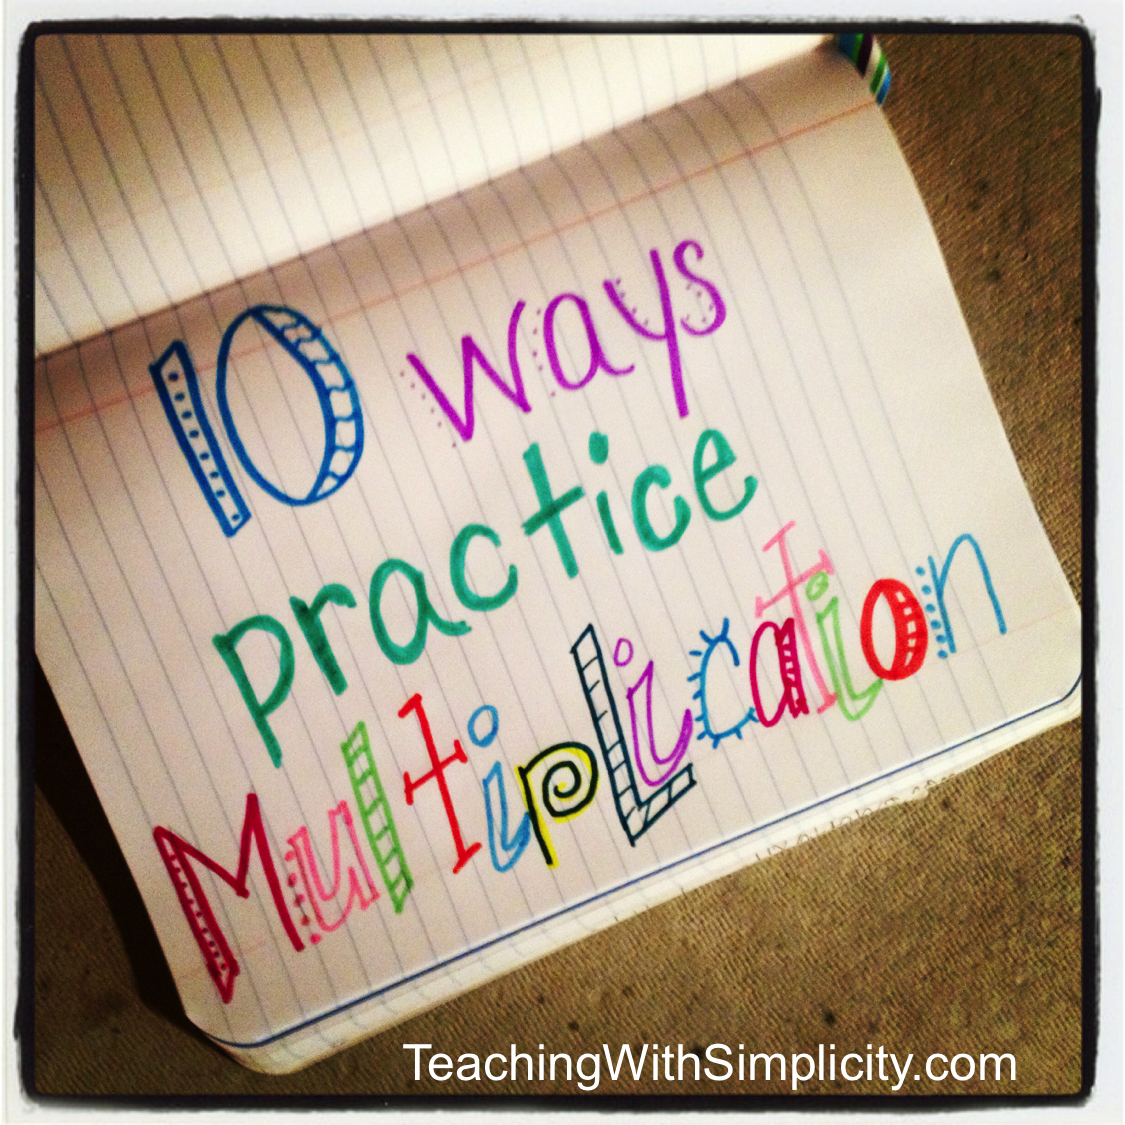 Worksheet Free Printable Multiplication Flash Cards 1-12 10 ways to practice multiplication facts teaching with simplicity